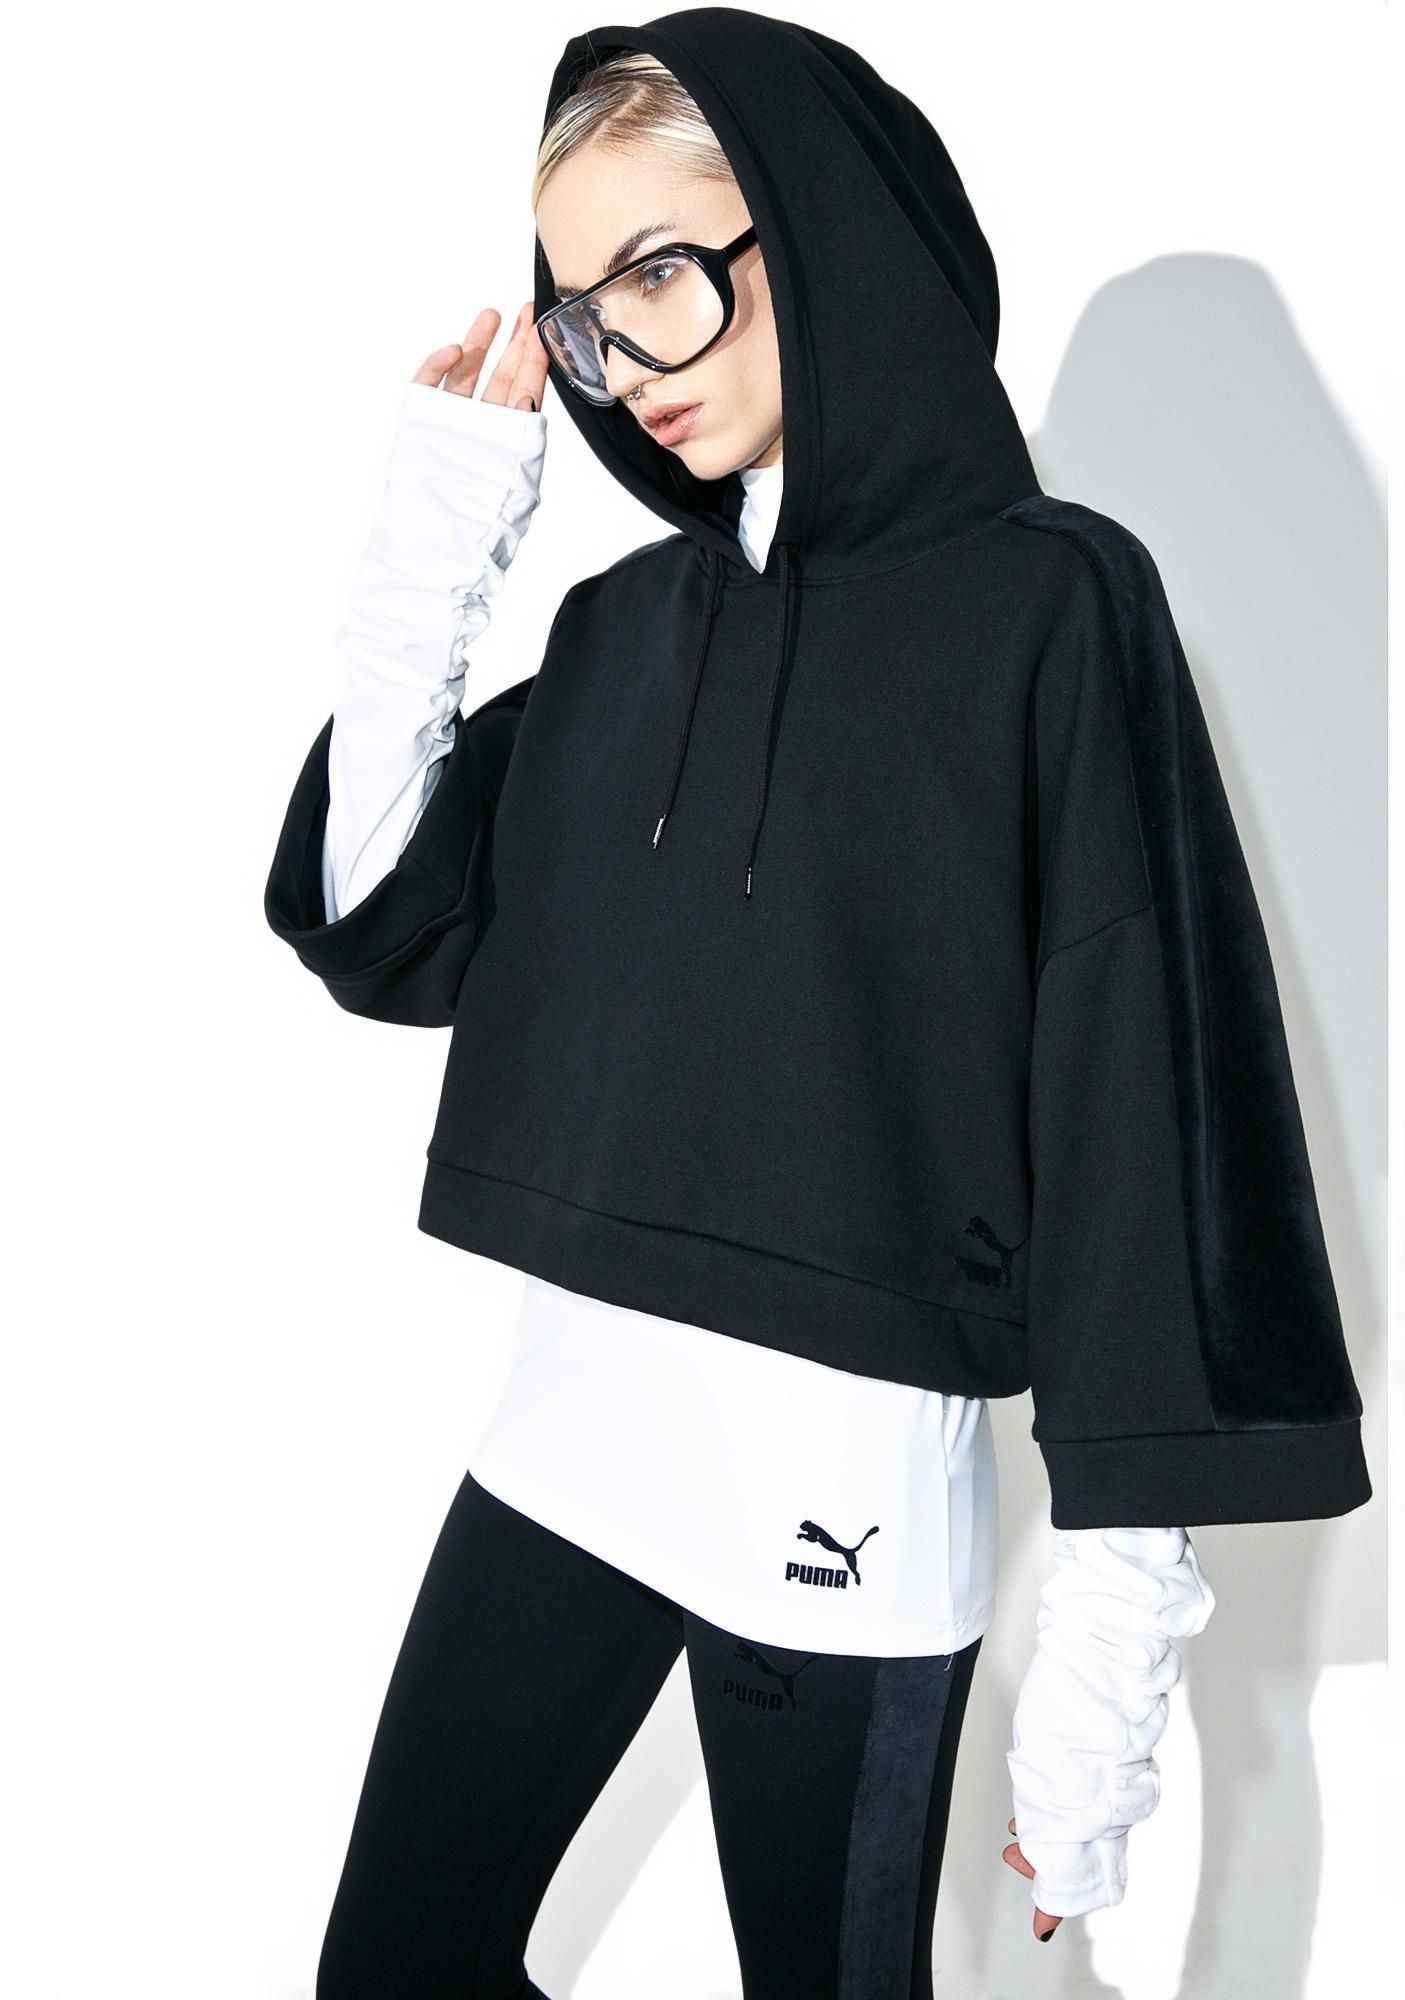 Xtreme cropped hoodie pumas streetwear clothing and wildfox